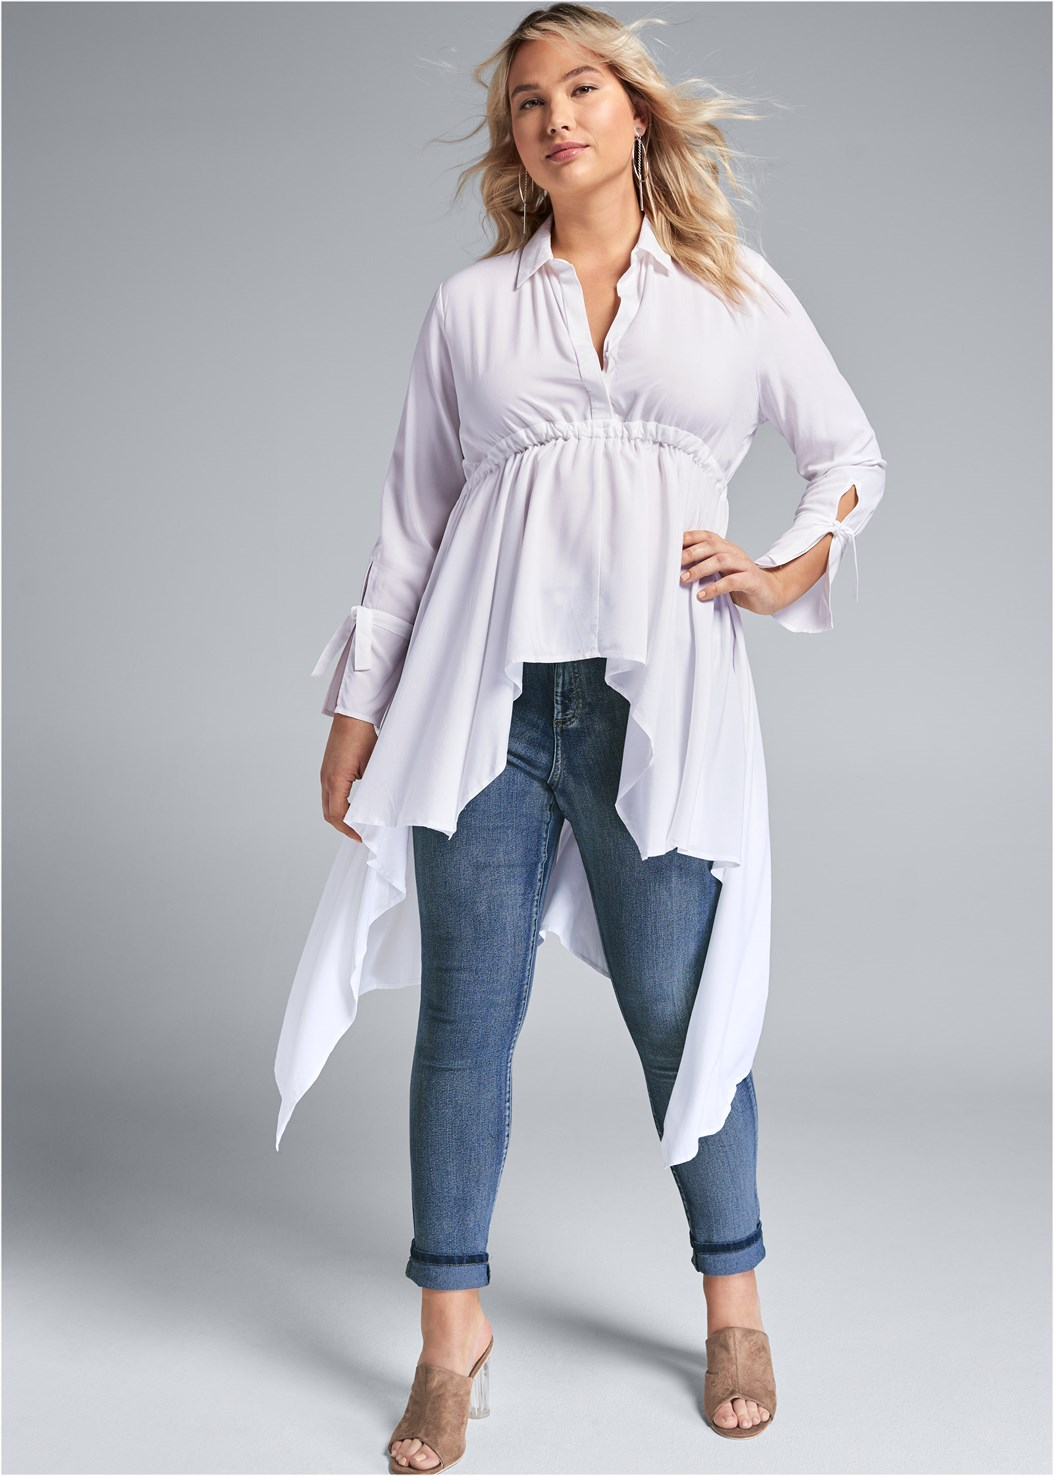 High Low Blouse,Mid Rise Color Skinny Jeans,Embellished Lucite Heel,Circular Straw Bag